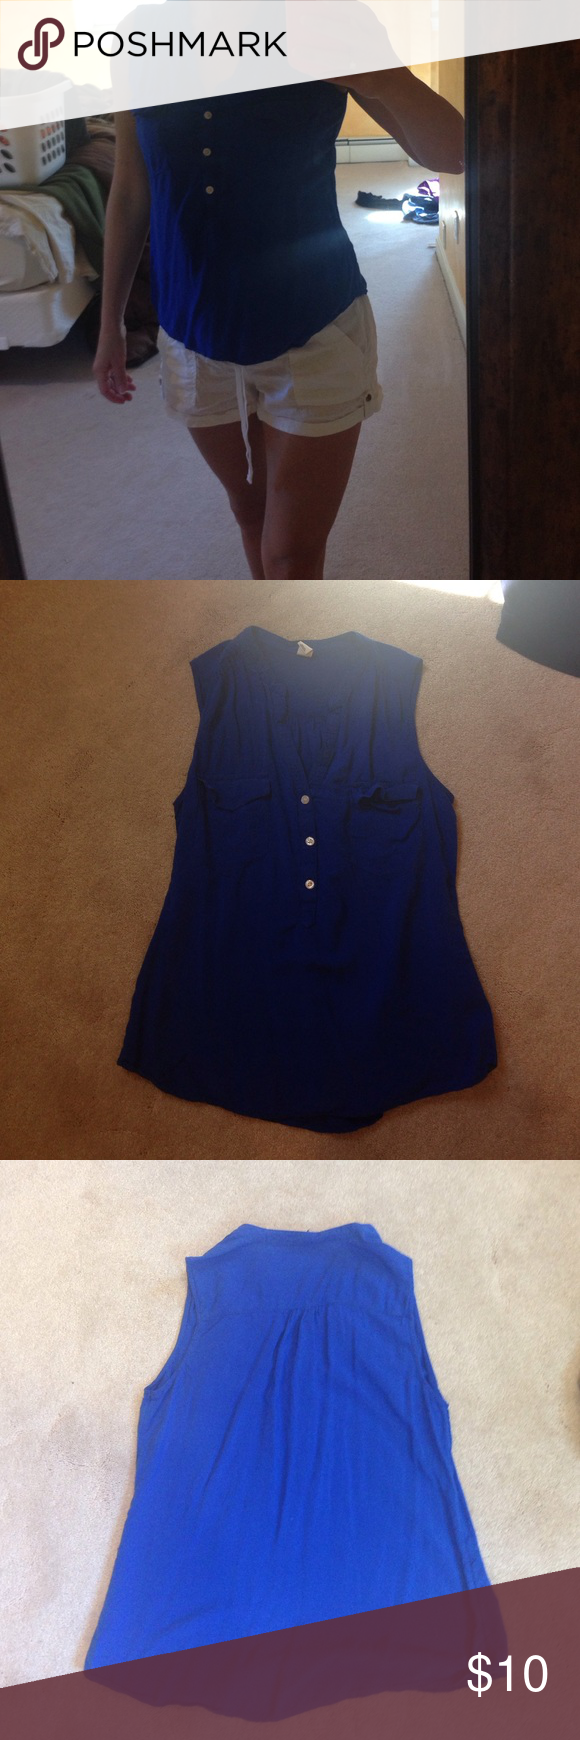 Flowy blue top This rayon top is very flattering and is a beautiful royal blue color. It has no flaws. Old Navy Tops Blouses